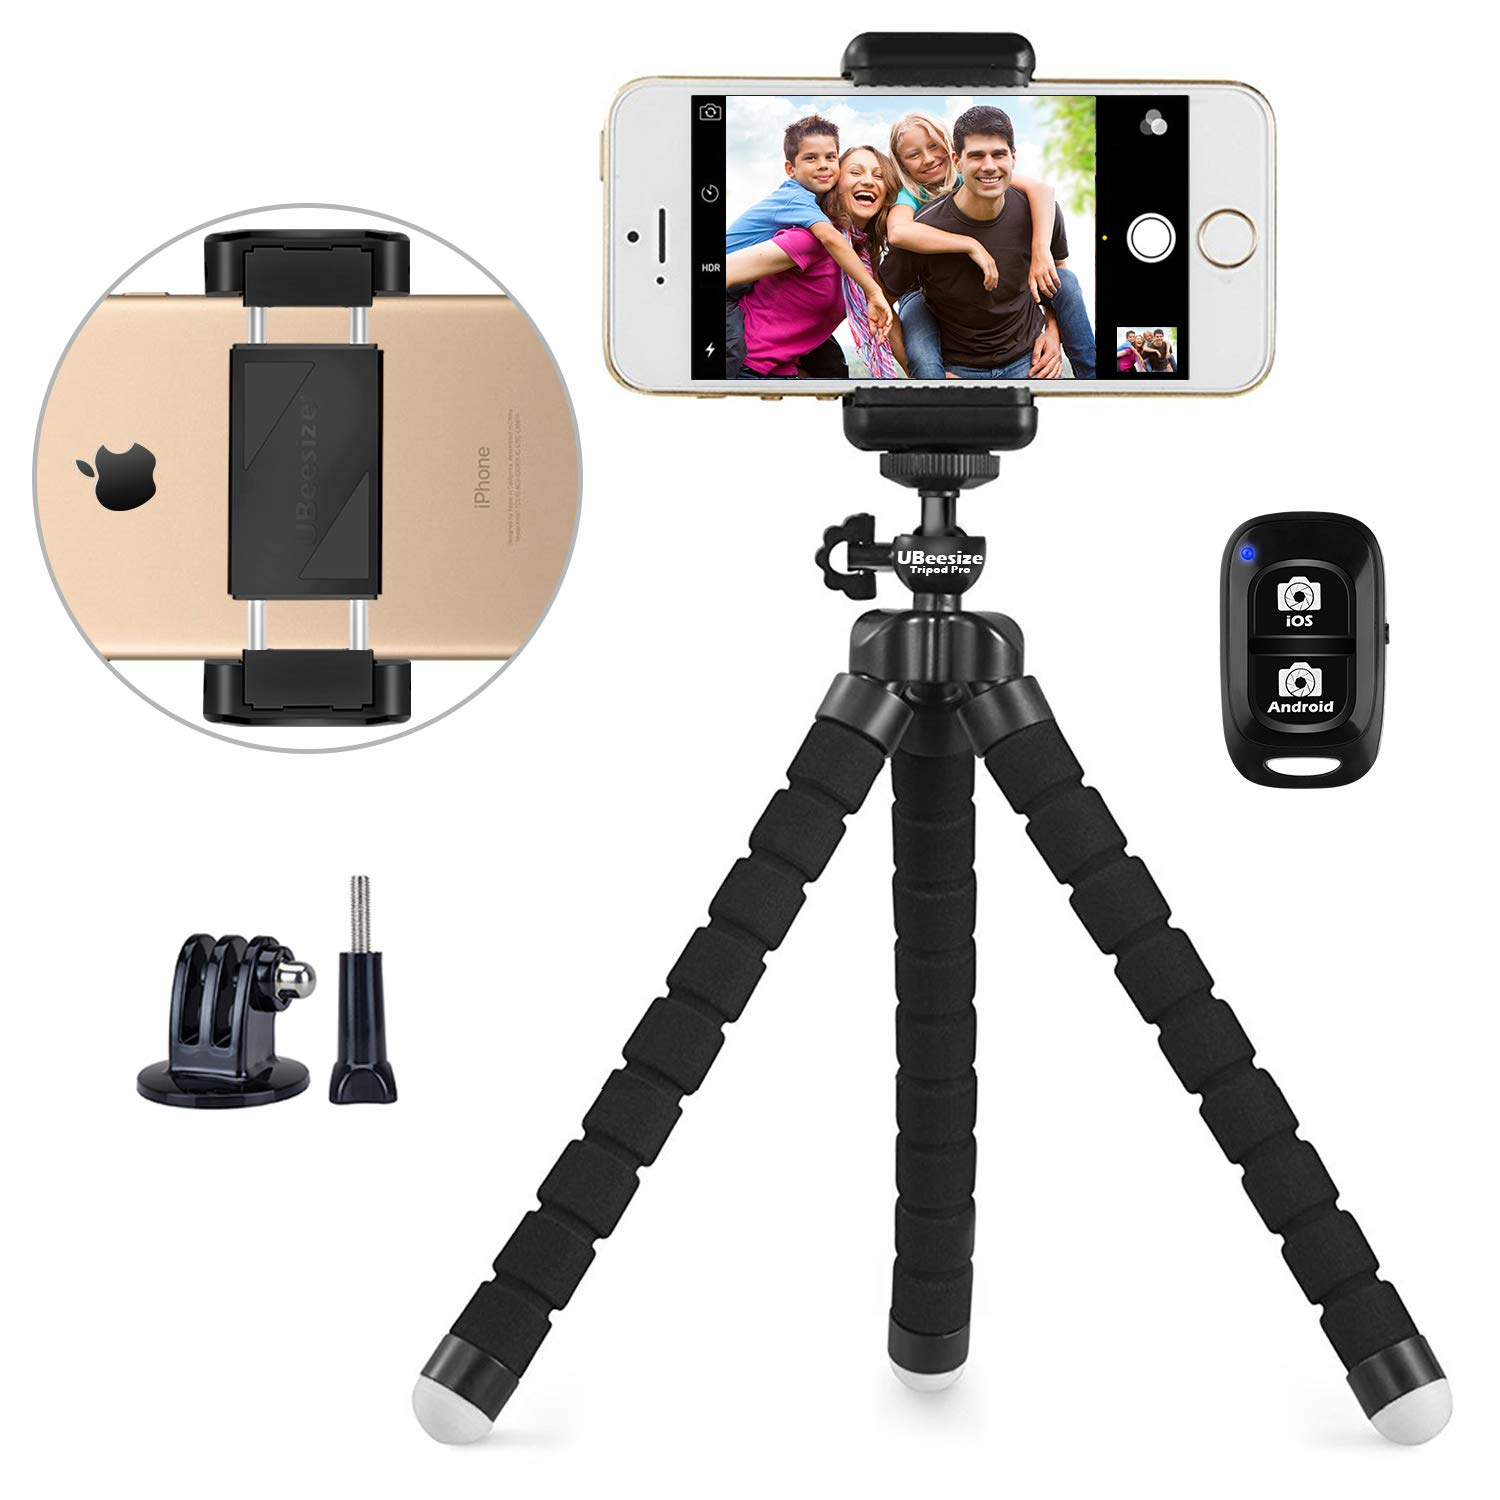 Phone Tripod, UBeesize Portable and Adjustable Camera Stand Holder with Wireless Remote and Universal Clip, Compatible with iPhone, Android Phone, Camera, Sports Camera GoPro (2018 New Version) by UBeesize